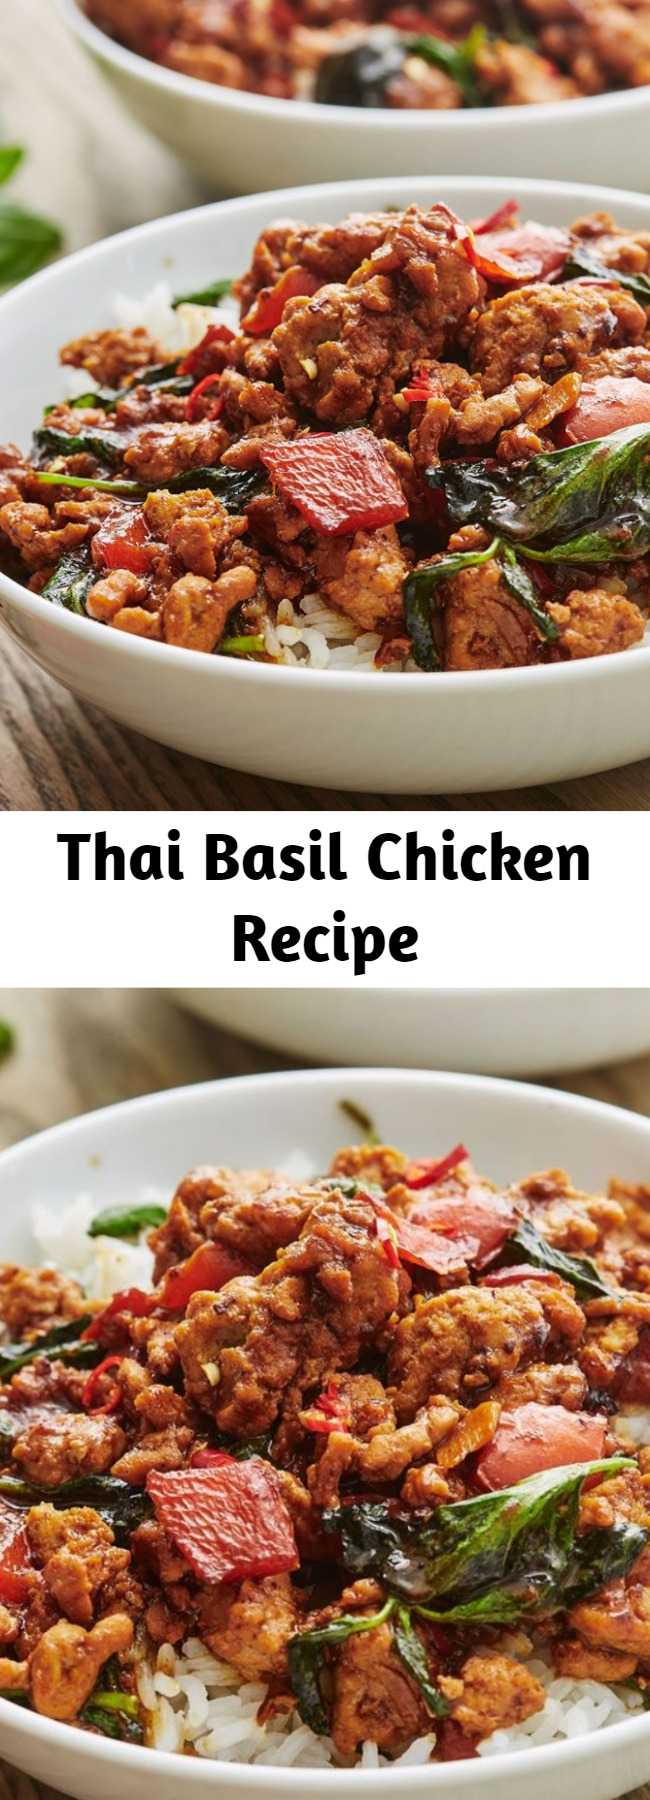 Thai Basil Chicken Recipe - The sauce on this is incredible; don't be anxious about the fish and/or oyster sauces, they lend a bright, salty flavor that isn't fishy at all. Cook up a heaping mound of white rice, spoon a ton of this over the top, and you're set!